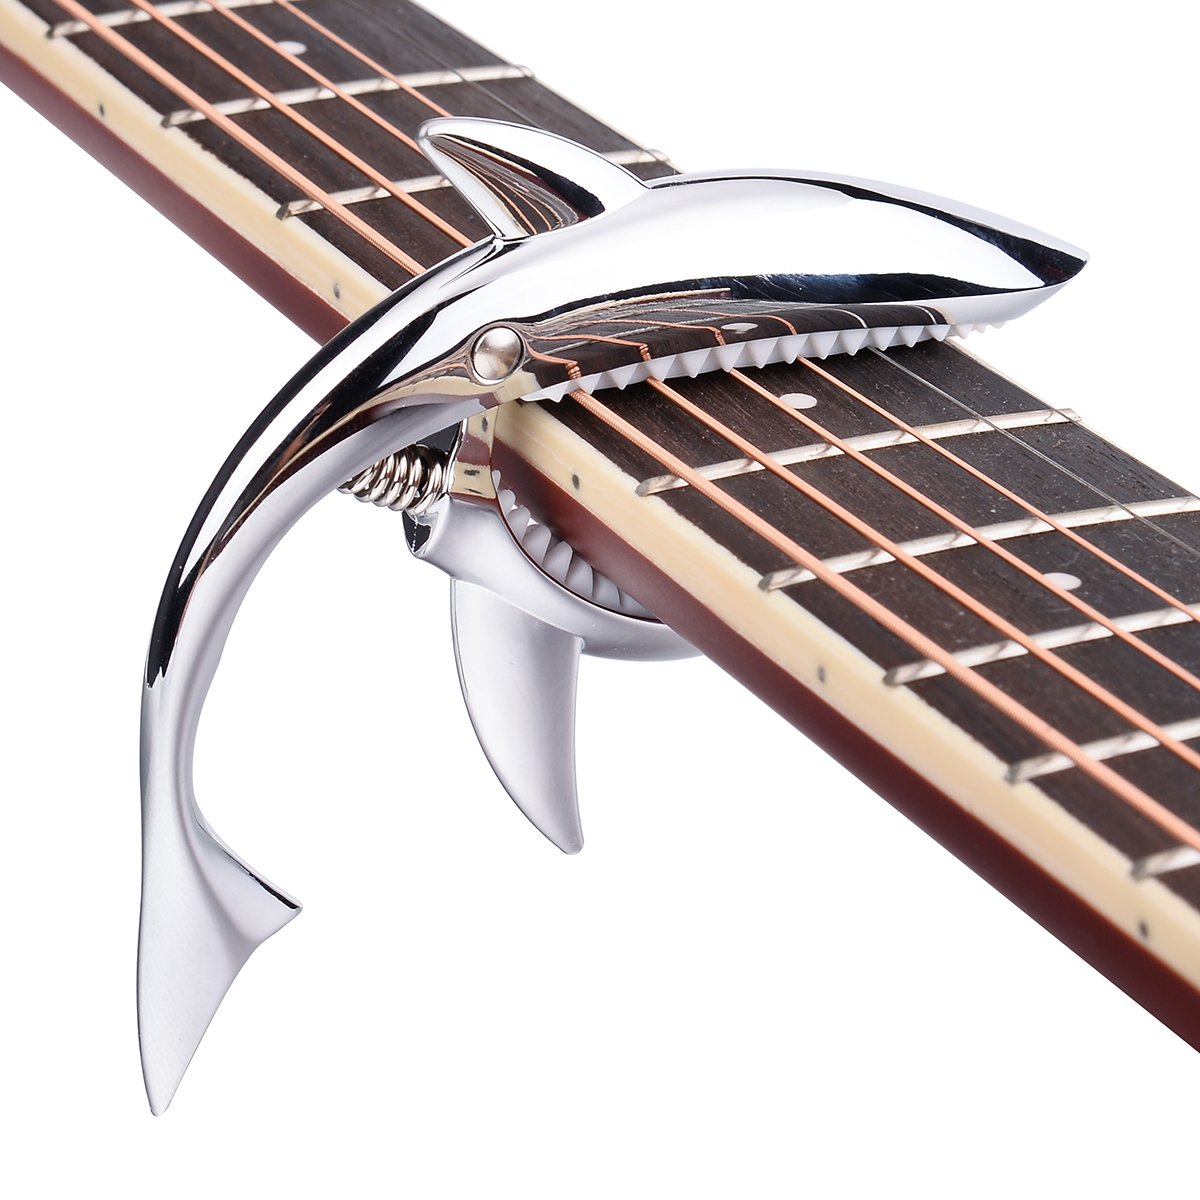 Bluesnow Shark Guitar Capo Zinc Alloy for Acoustic and Electric Guitar (Silver) B0A0B37SH